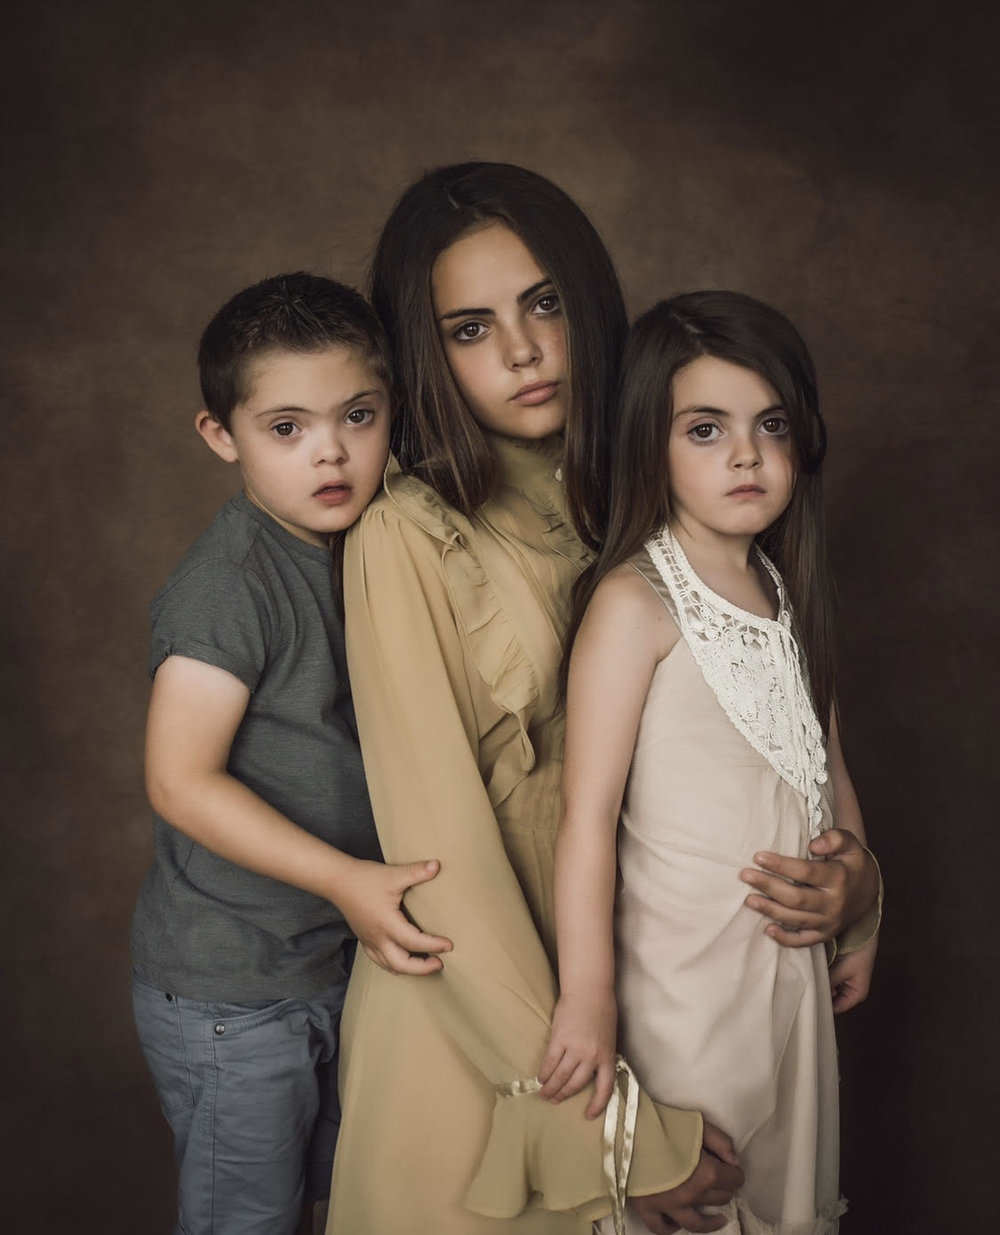 Isabella, Lucus and Indiana - on a fine art shoot (they aren't meant to smile)